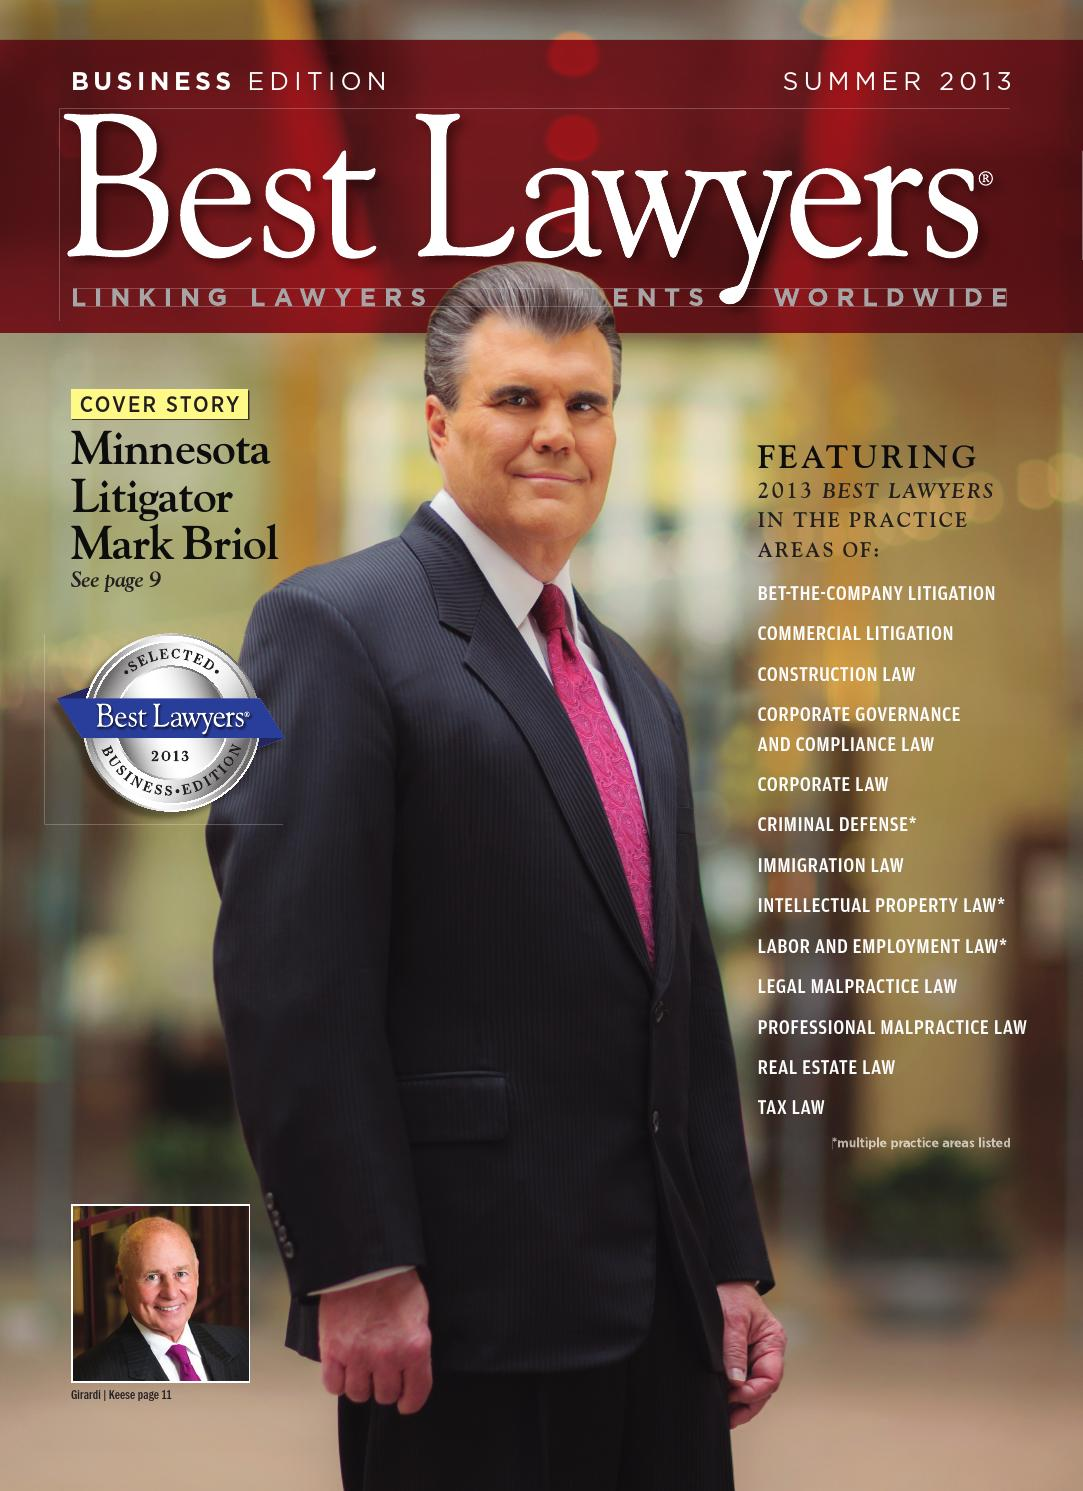 Best Lawyers Summer Business Edition 2013 by Best Lawyers - issuu e8daf1edd0461